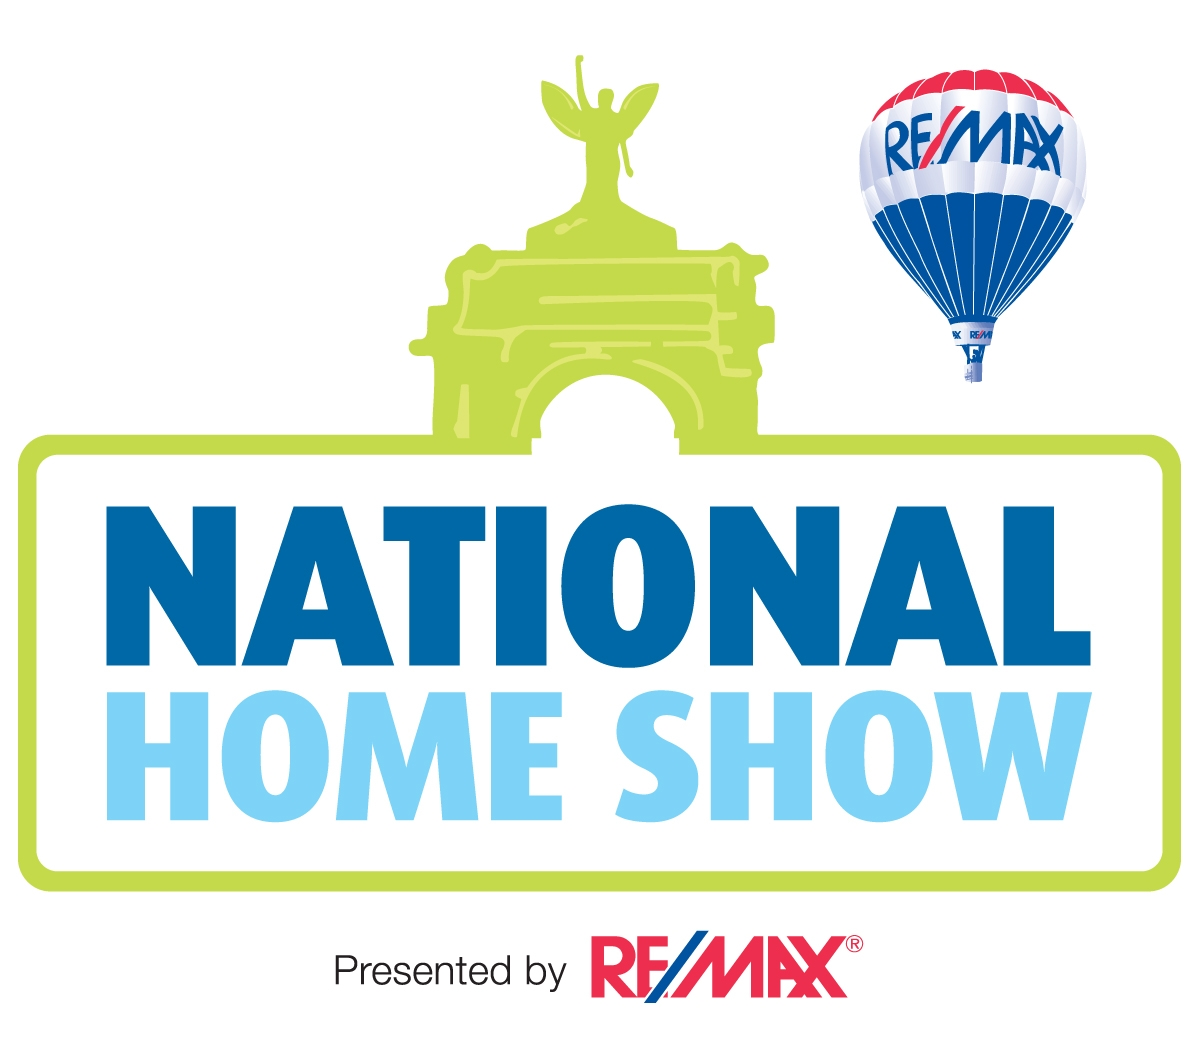 National Home Show logo 0